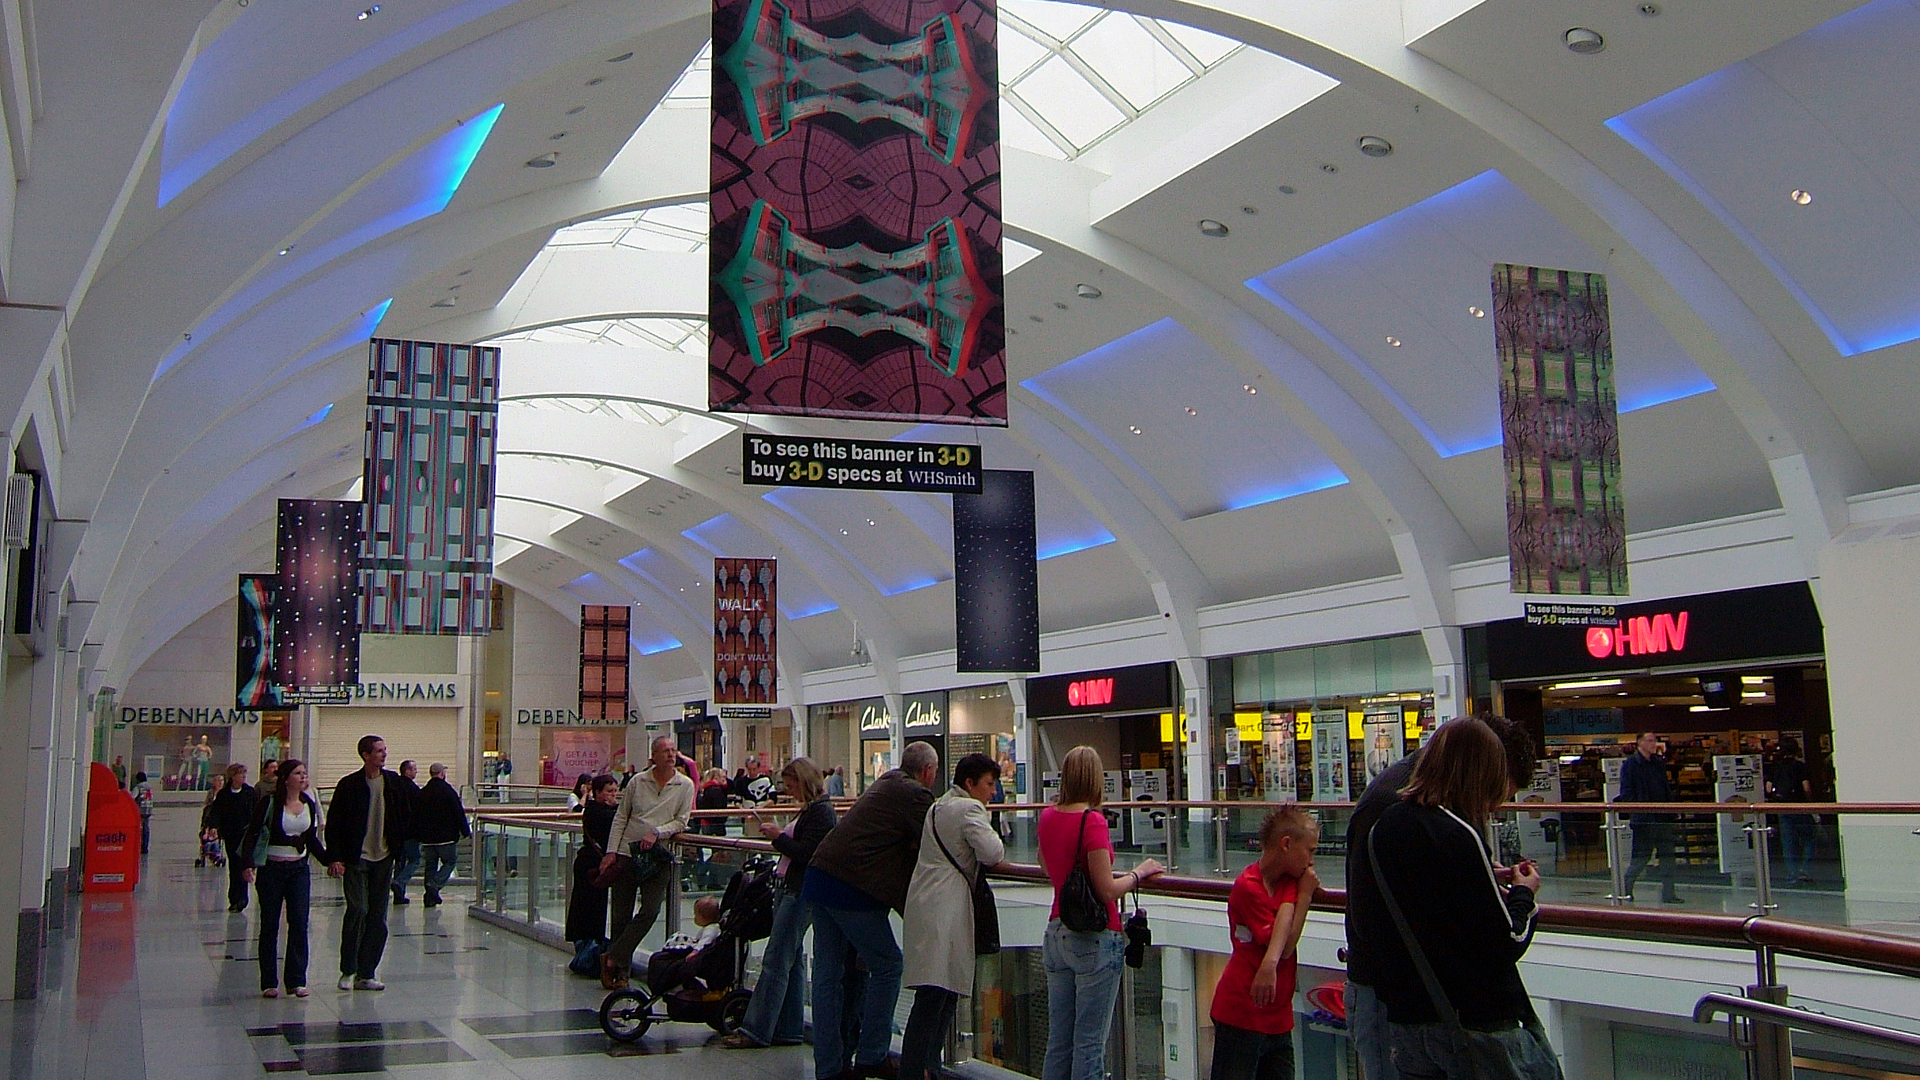 3D banners in Churchill Square Shopping Centre, Brighton / Photo: Mark Ware